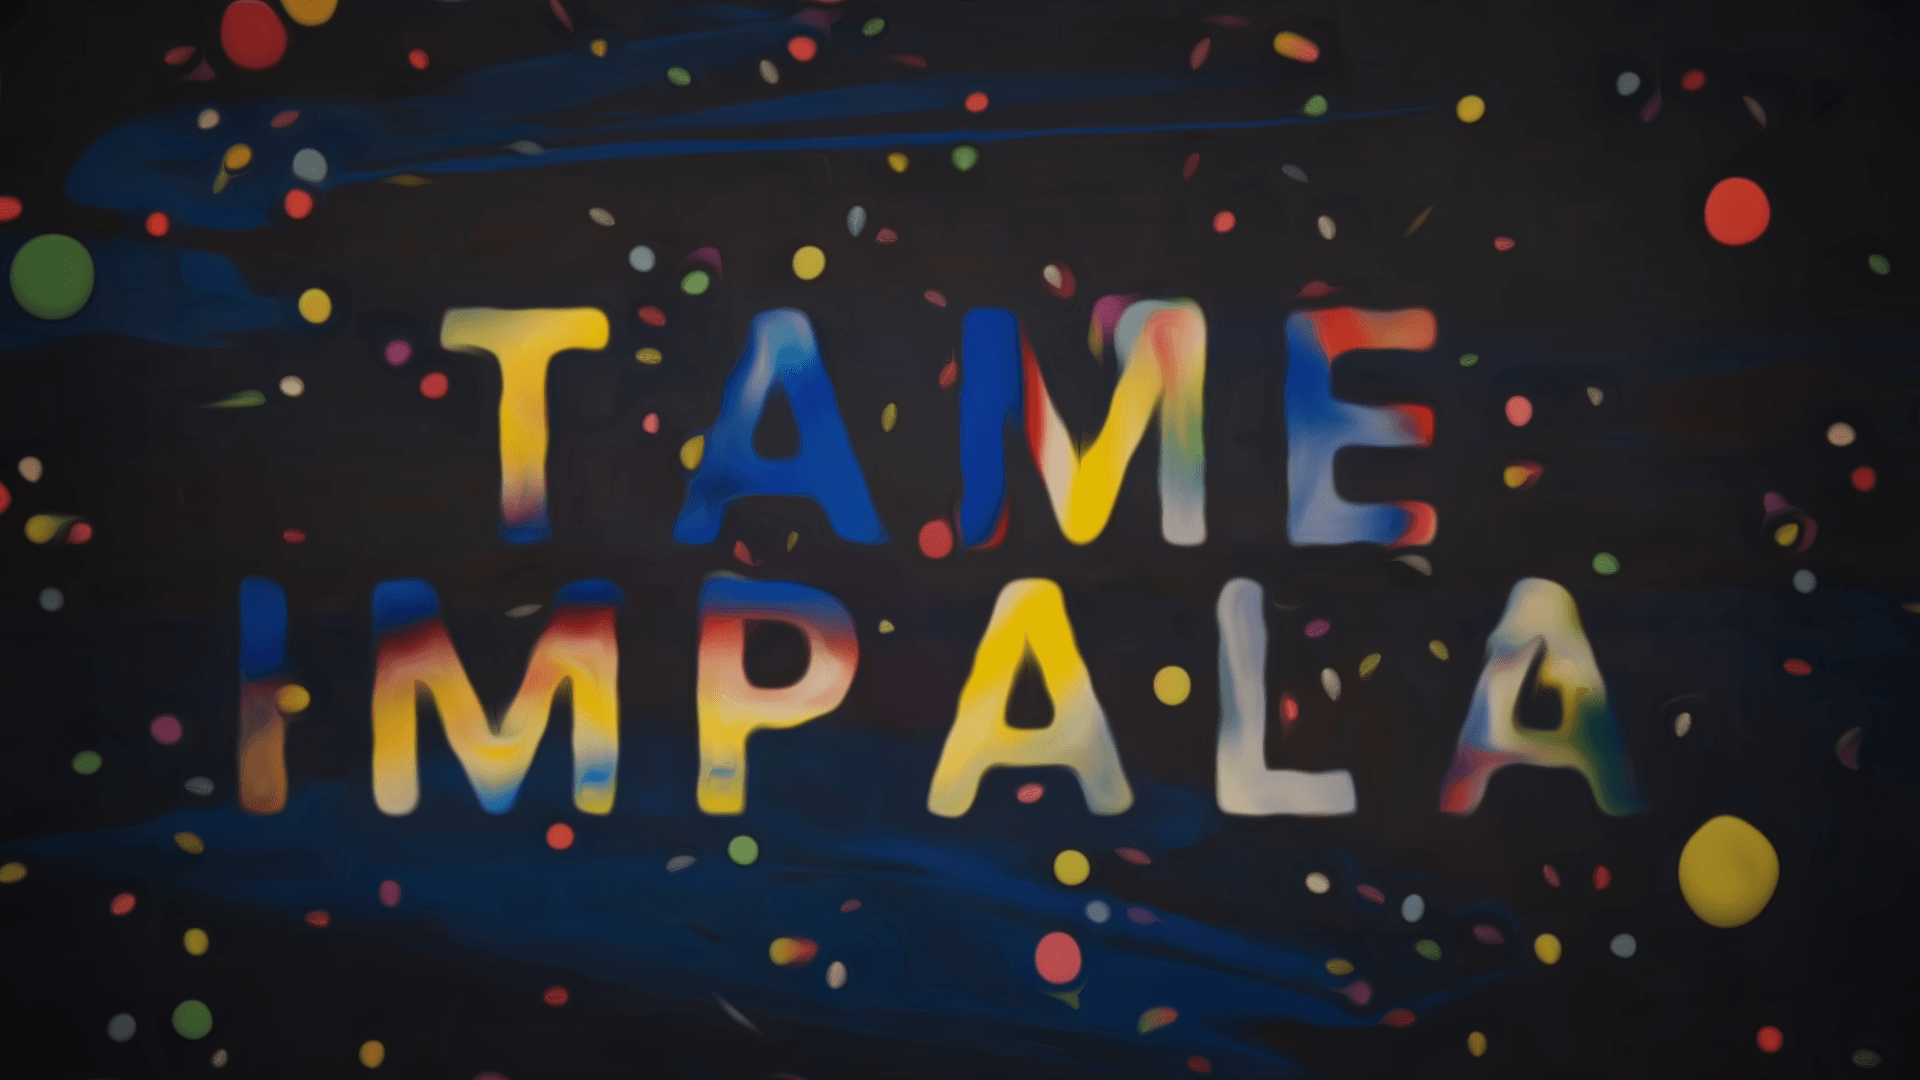 I made the Tame Impala wallpapers smoother in Photoshop, tell me if